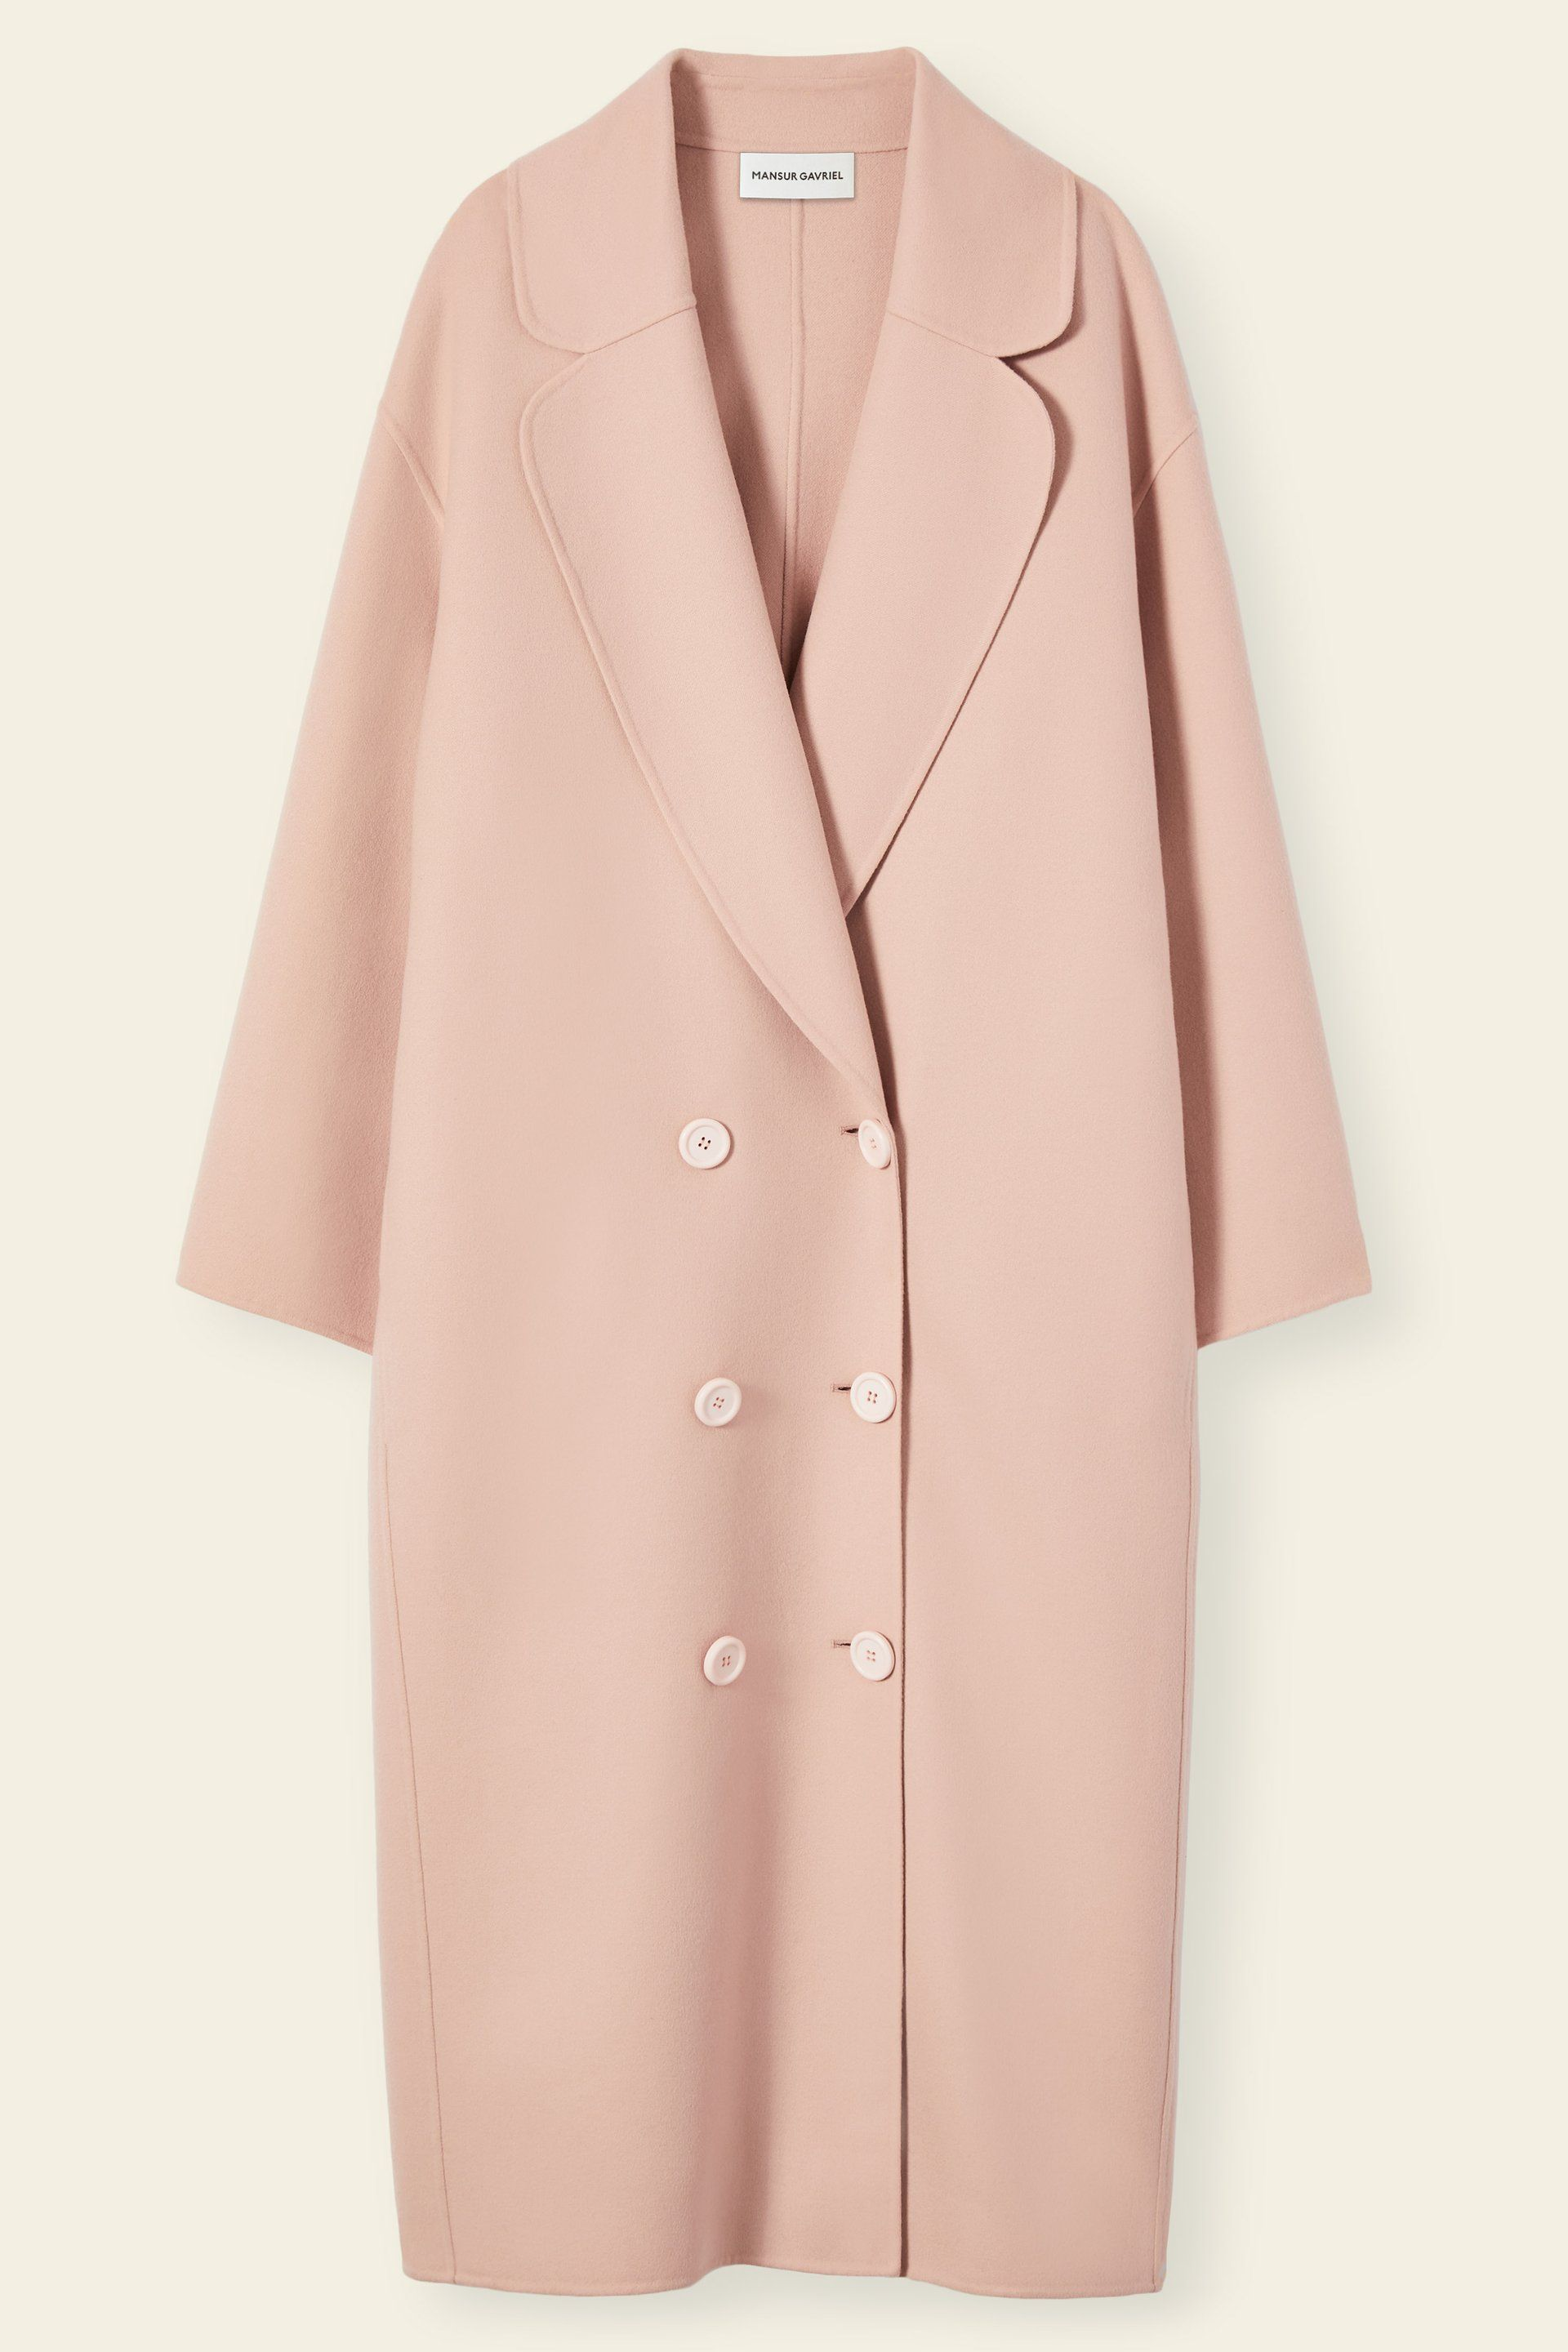 28886781eeb Italian wool cashmere light pink oversized long coat. Double breasted six  button closure and two